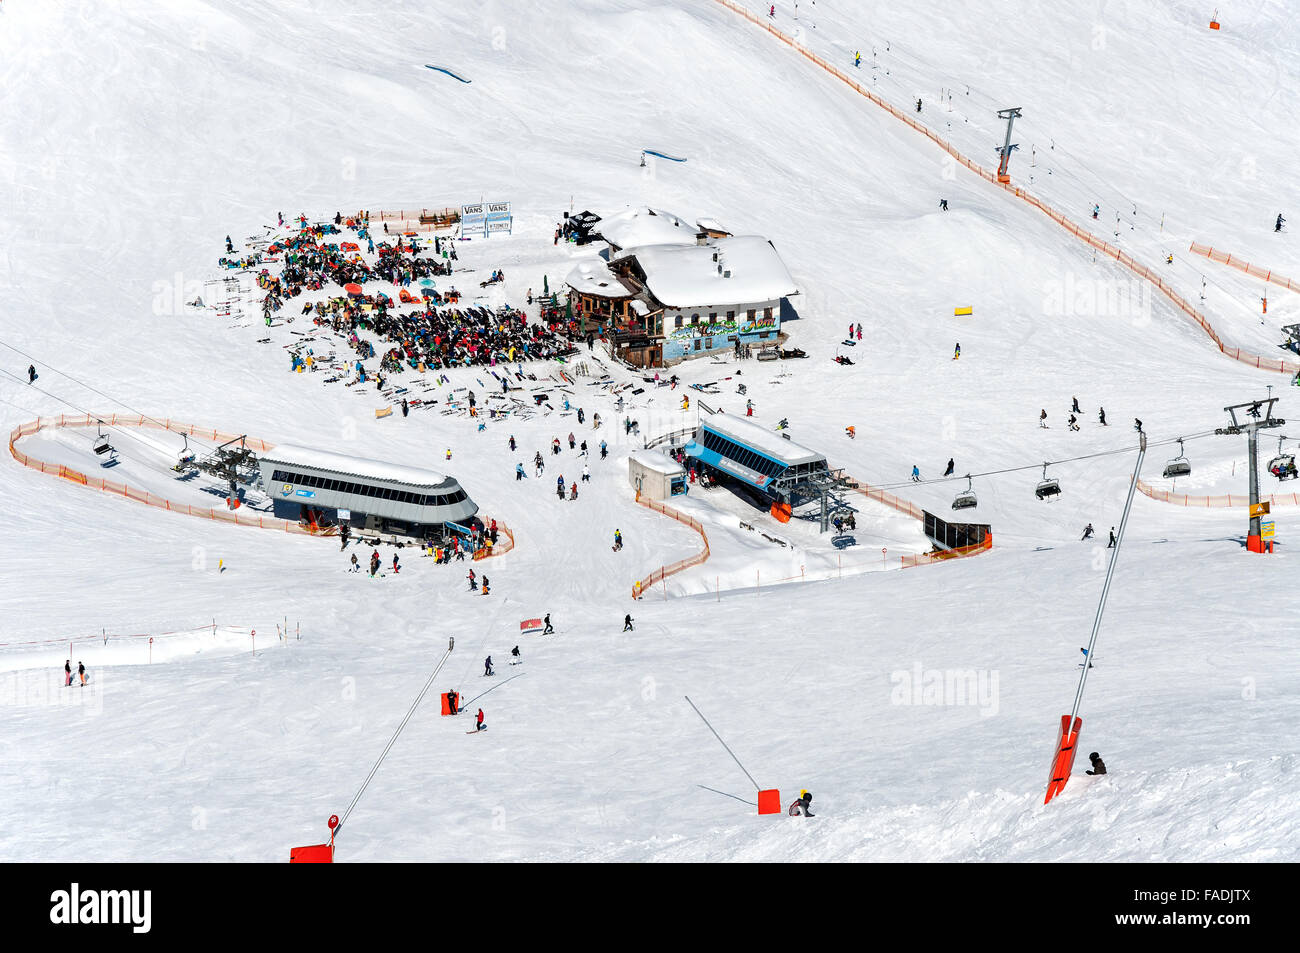 Mayrhofen Ski resort middle station area with ski lifts, pistes and skiers. Zillertal Alps, Tirol, Austria. - Stock Image